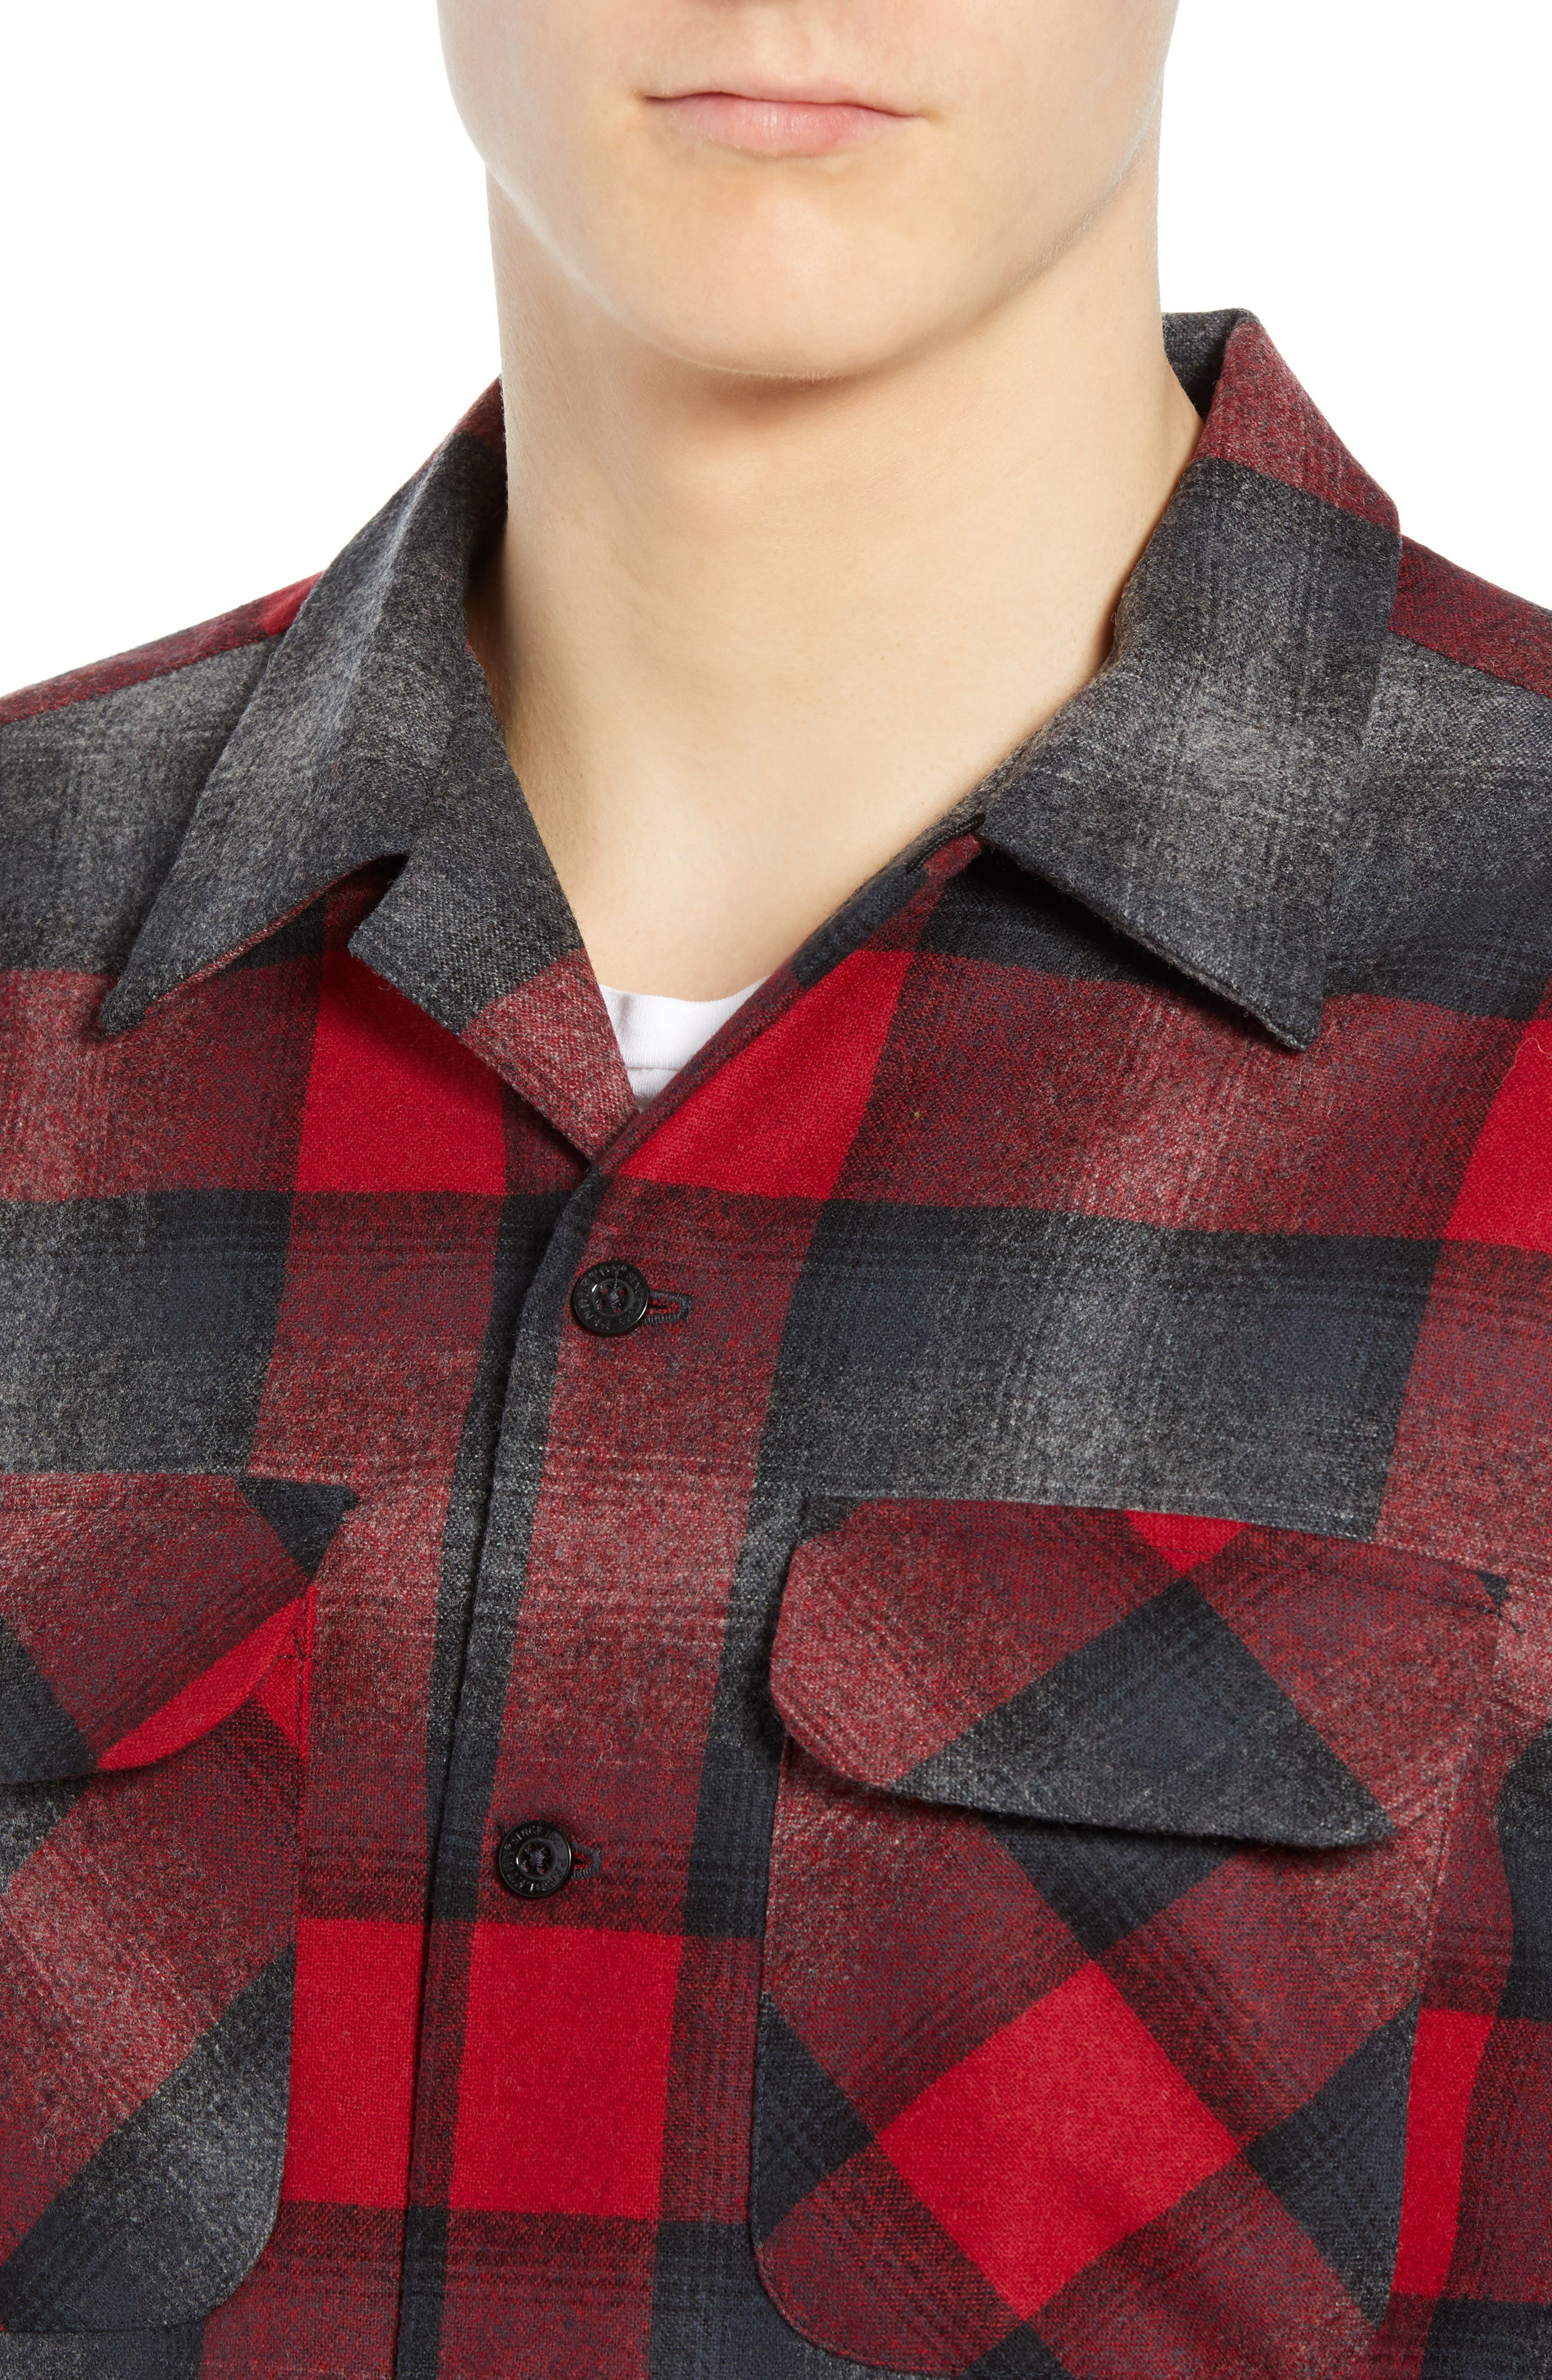 Board Wool Flannel Shirt,                             Alternate thumbnail 2, color,                             BLACK/ GREY MIX/ RED OMBRE